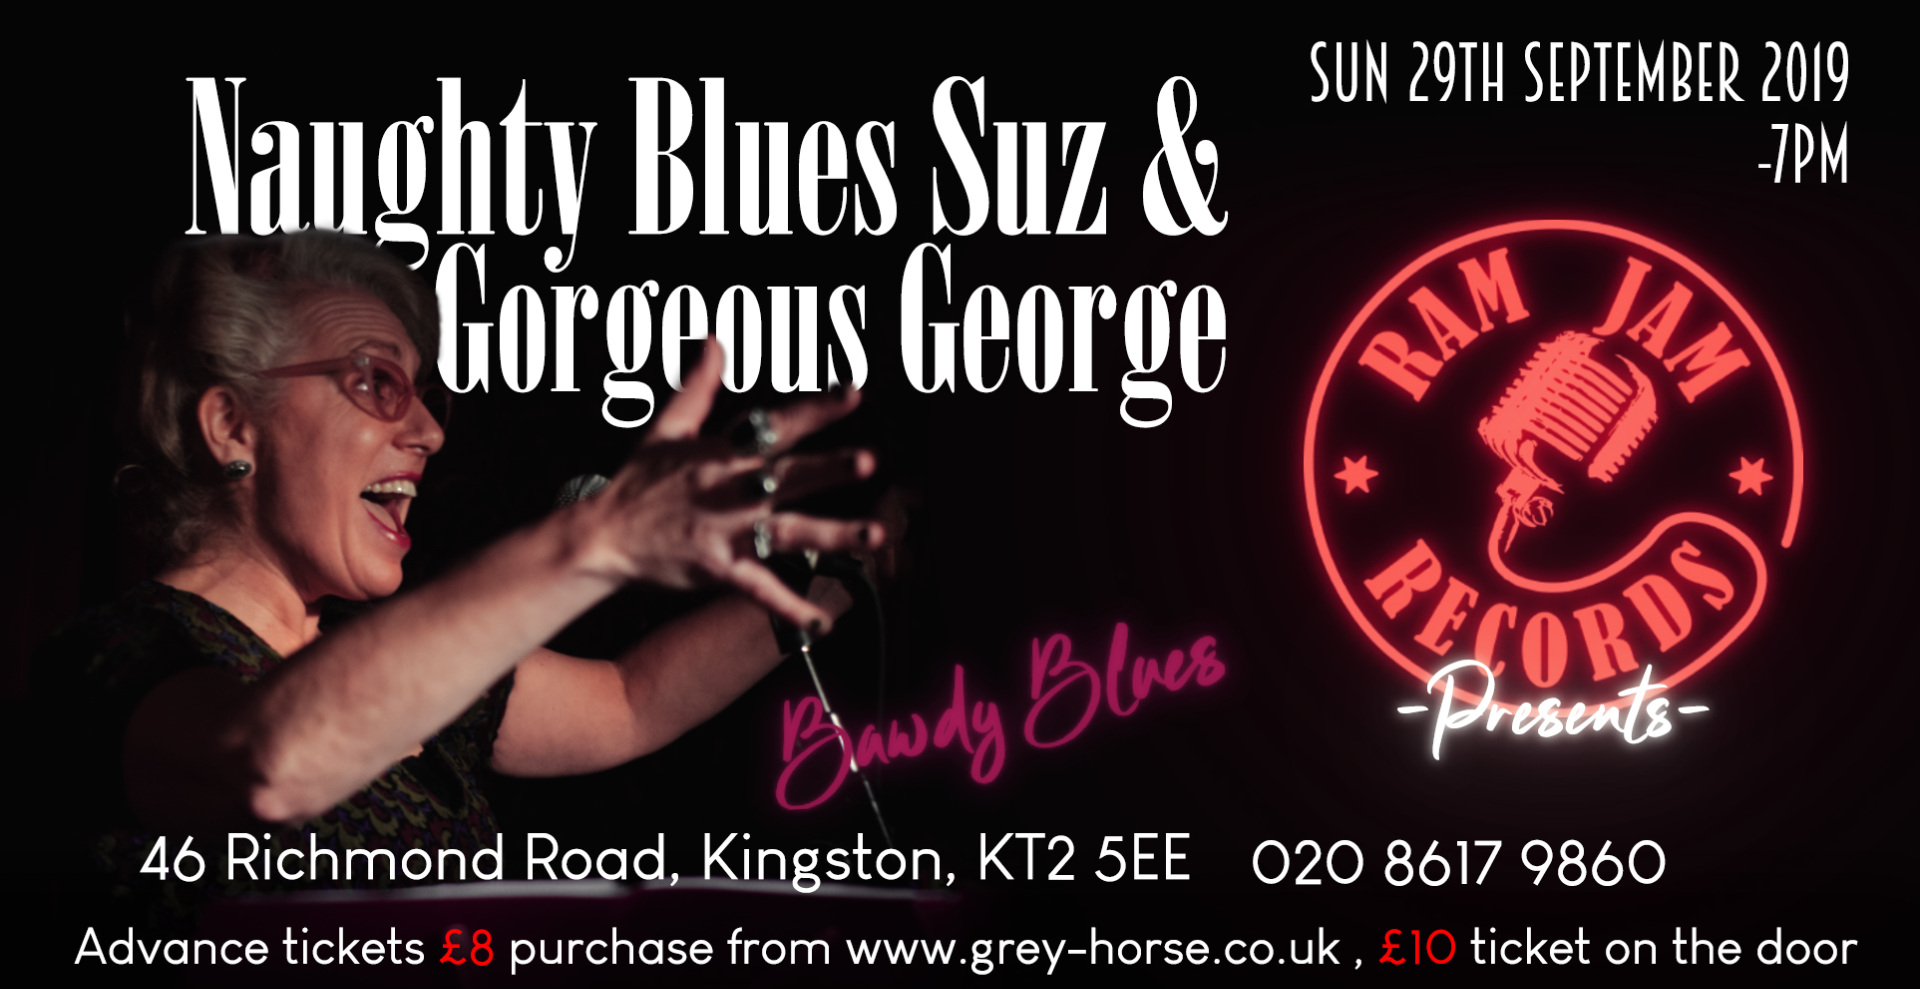 Naughty Blues Suz and Gorgeous George - Bawdy Blues